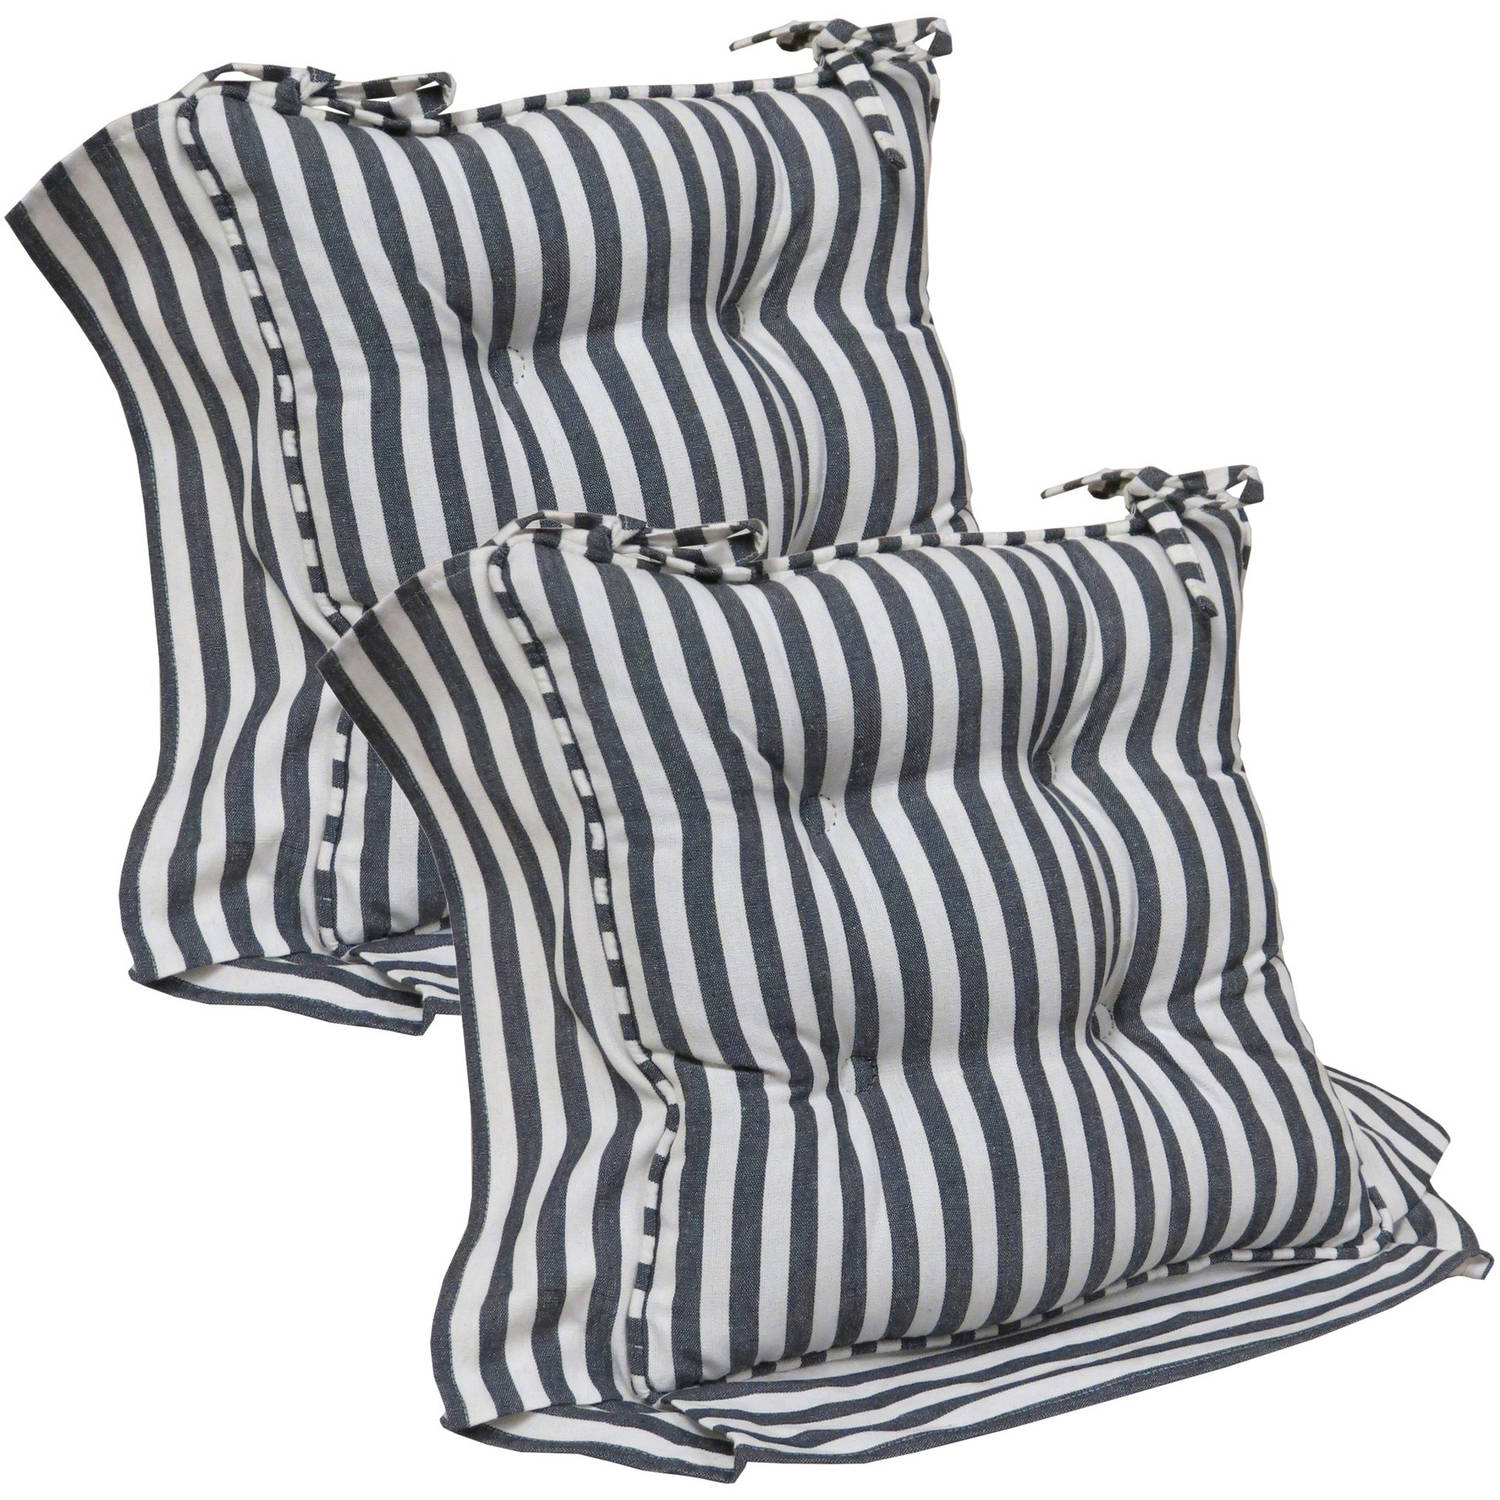 Your Decor Reggie Stripe Chair Cushions with String Ties, Set of 2